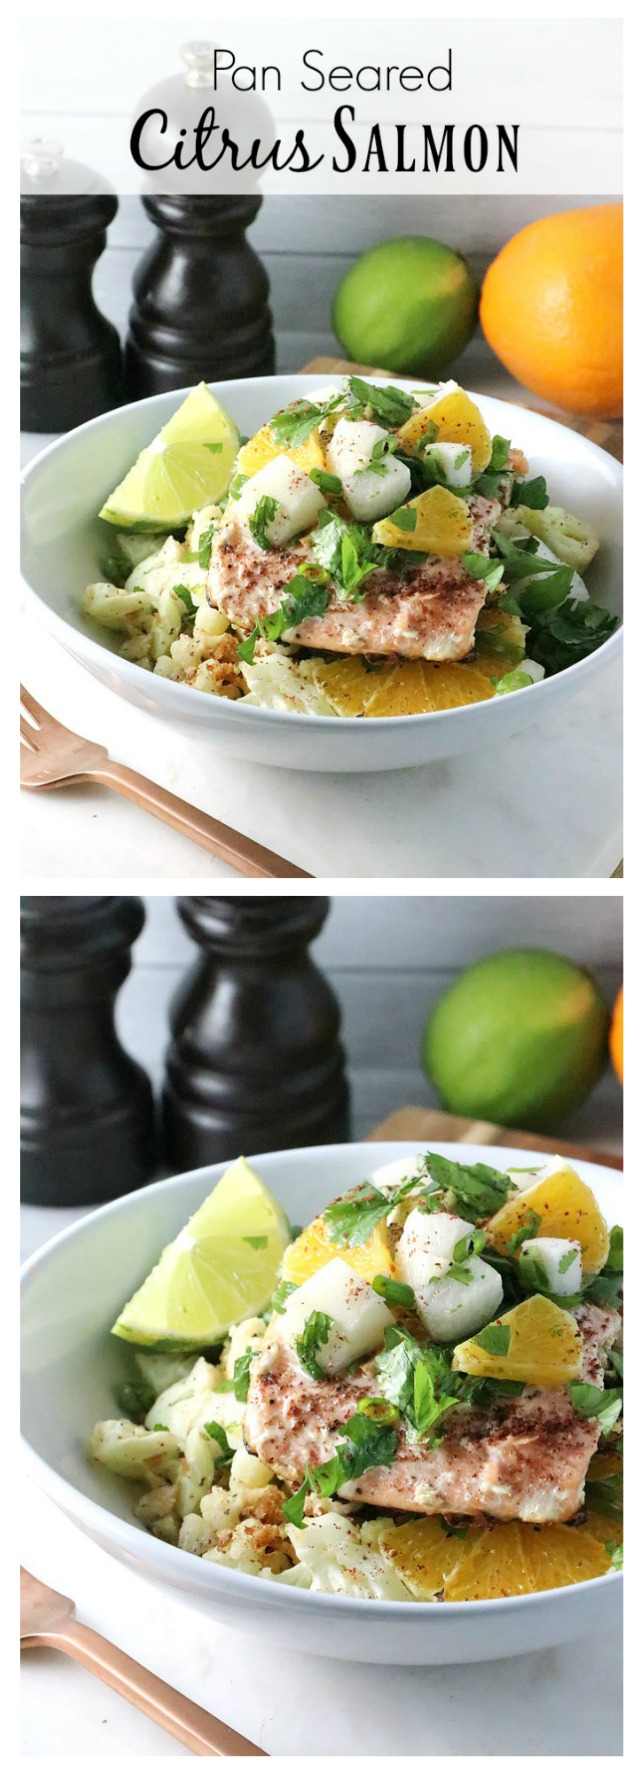 If you love effortless spring-inspired dishes, you need to try this recipe for Pan-Seared Citrus Salmon! Paired with cauliflower rice and seasoned with the fresh flavors of spring, this healthy dish is a must try.